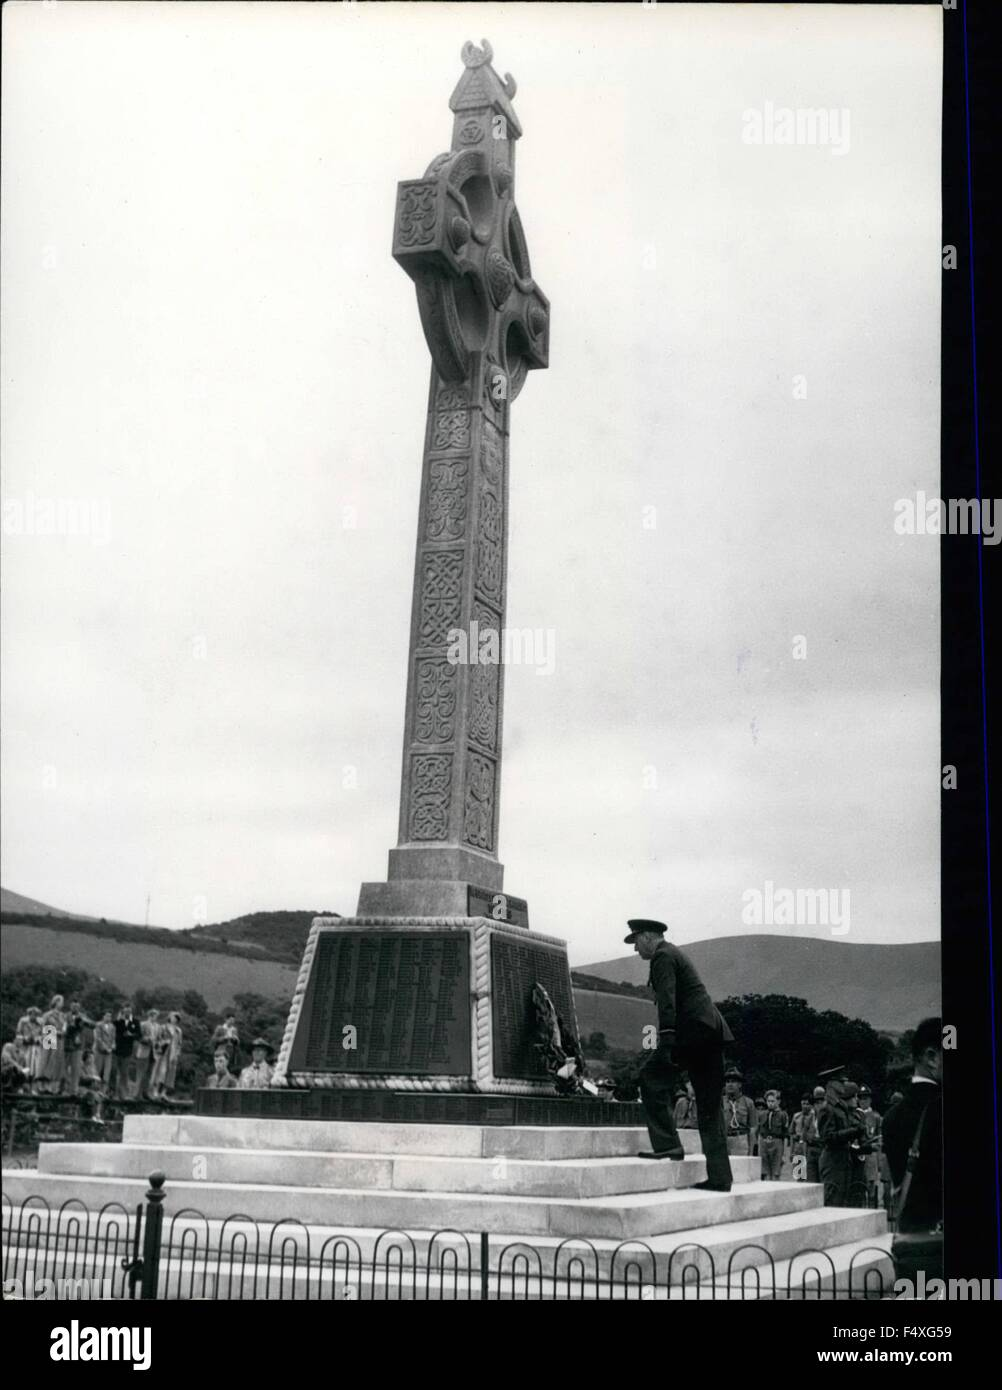 1968 - ceremony on the Isle of man places a wreath on the memorial: The Lieut-Governor, H.E. Air-Vice Marshal Sir - Stock Image